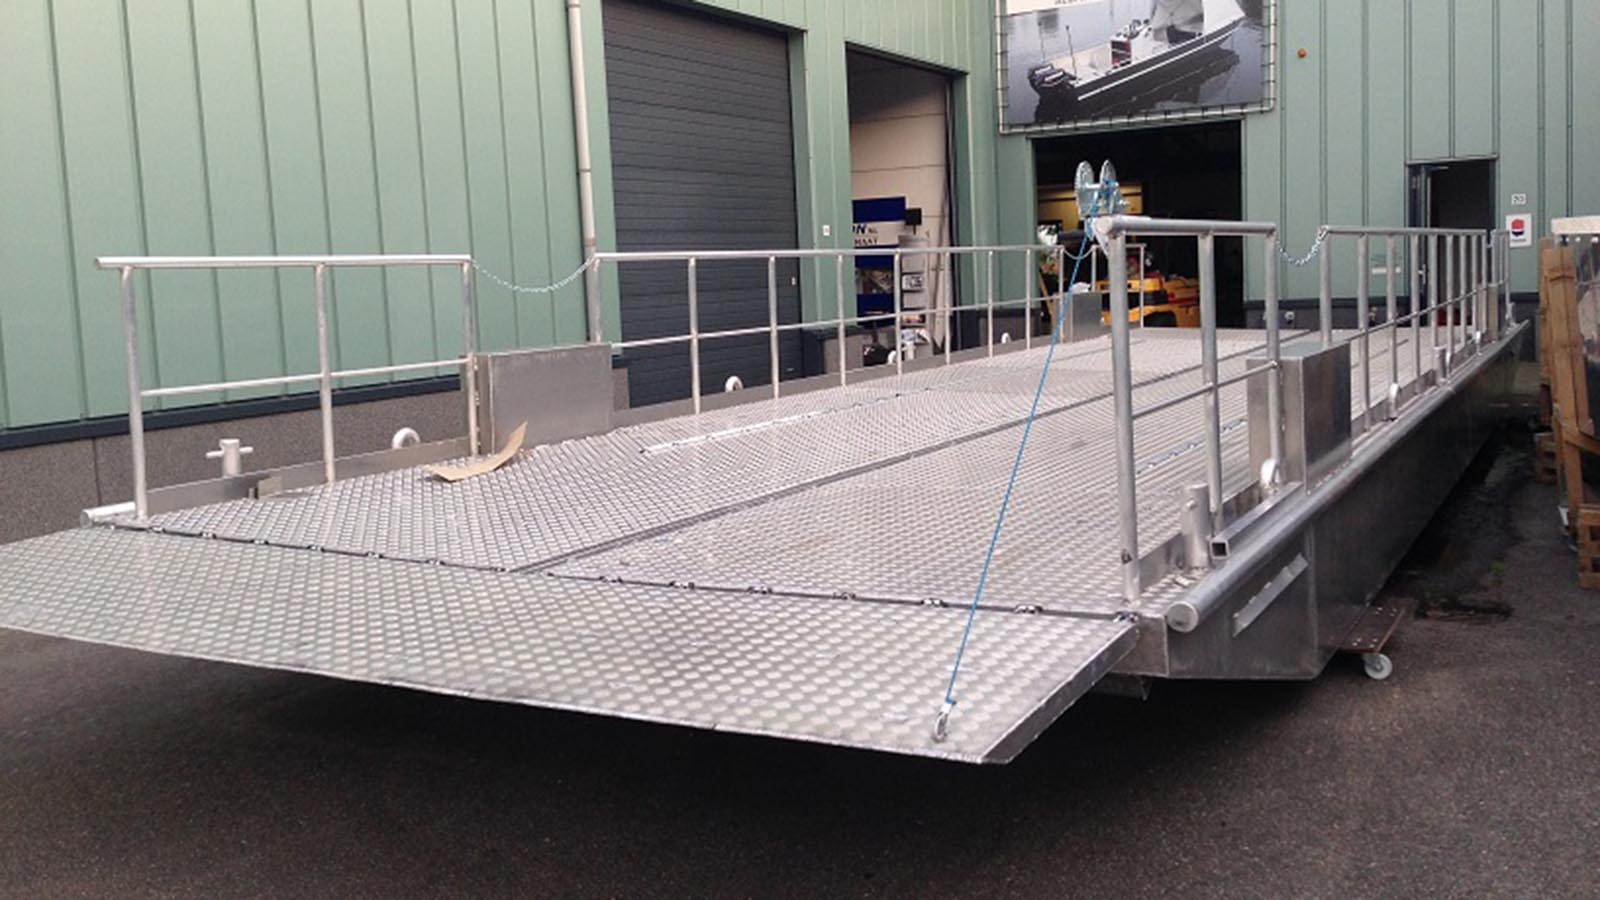 AluminiumJon.nl-on made aluminum pontoons longer than 8 meters, inquire about the possibilities